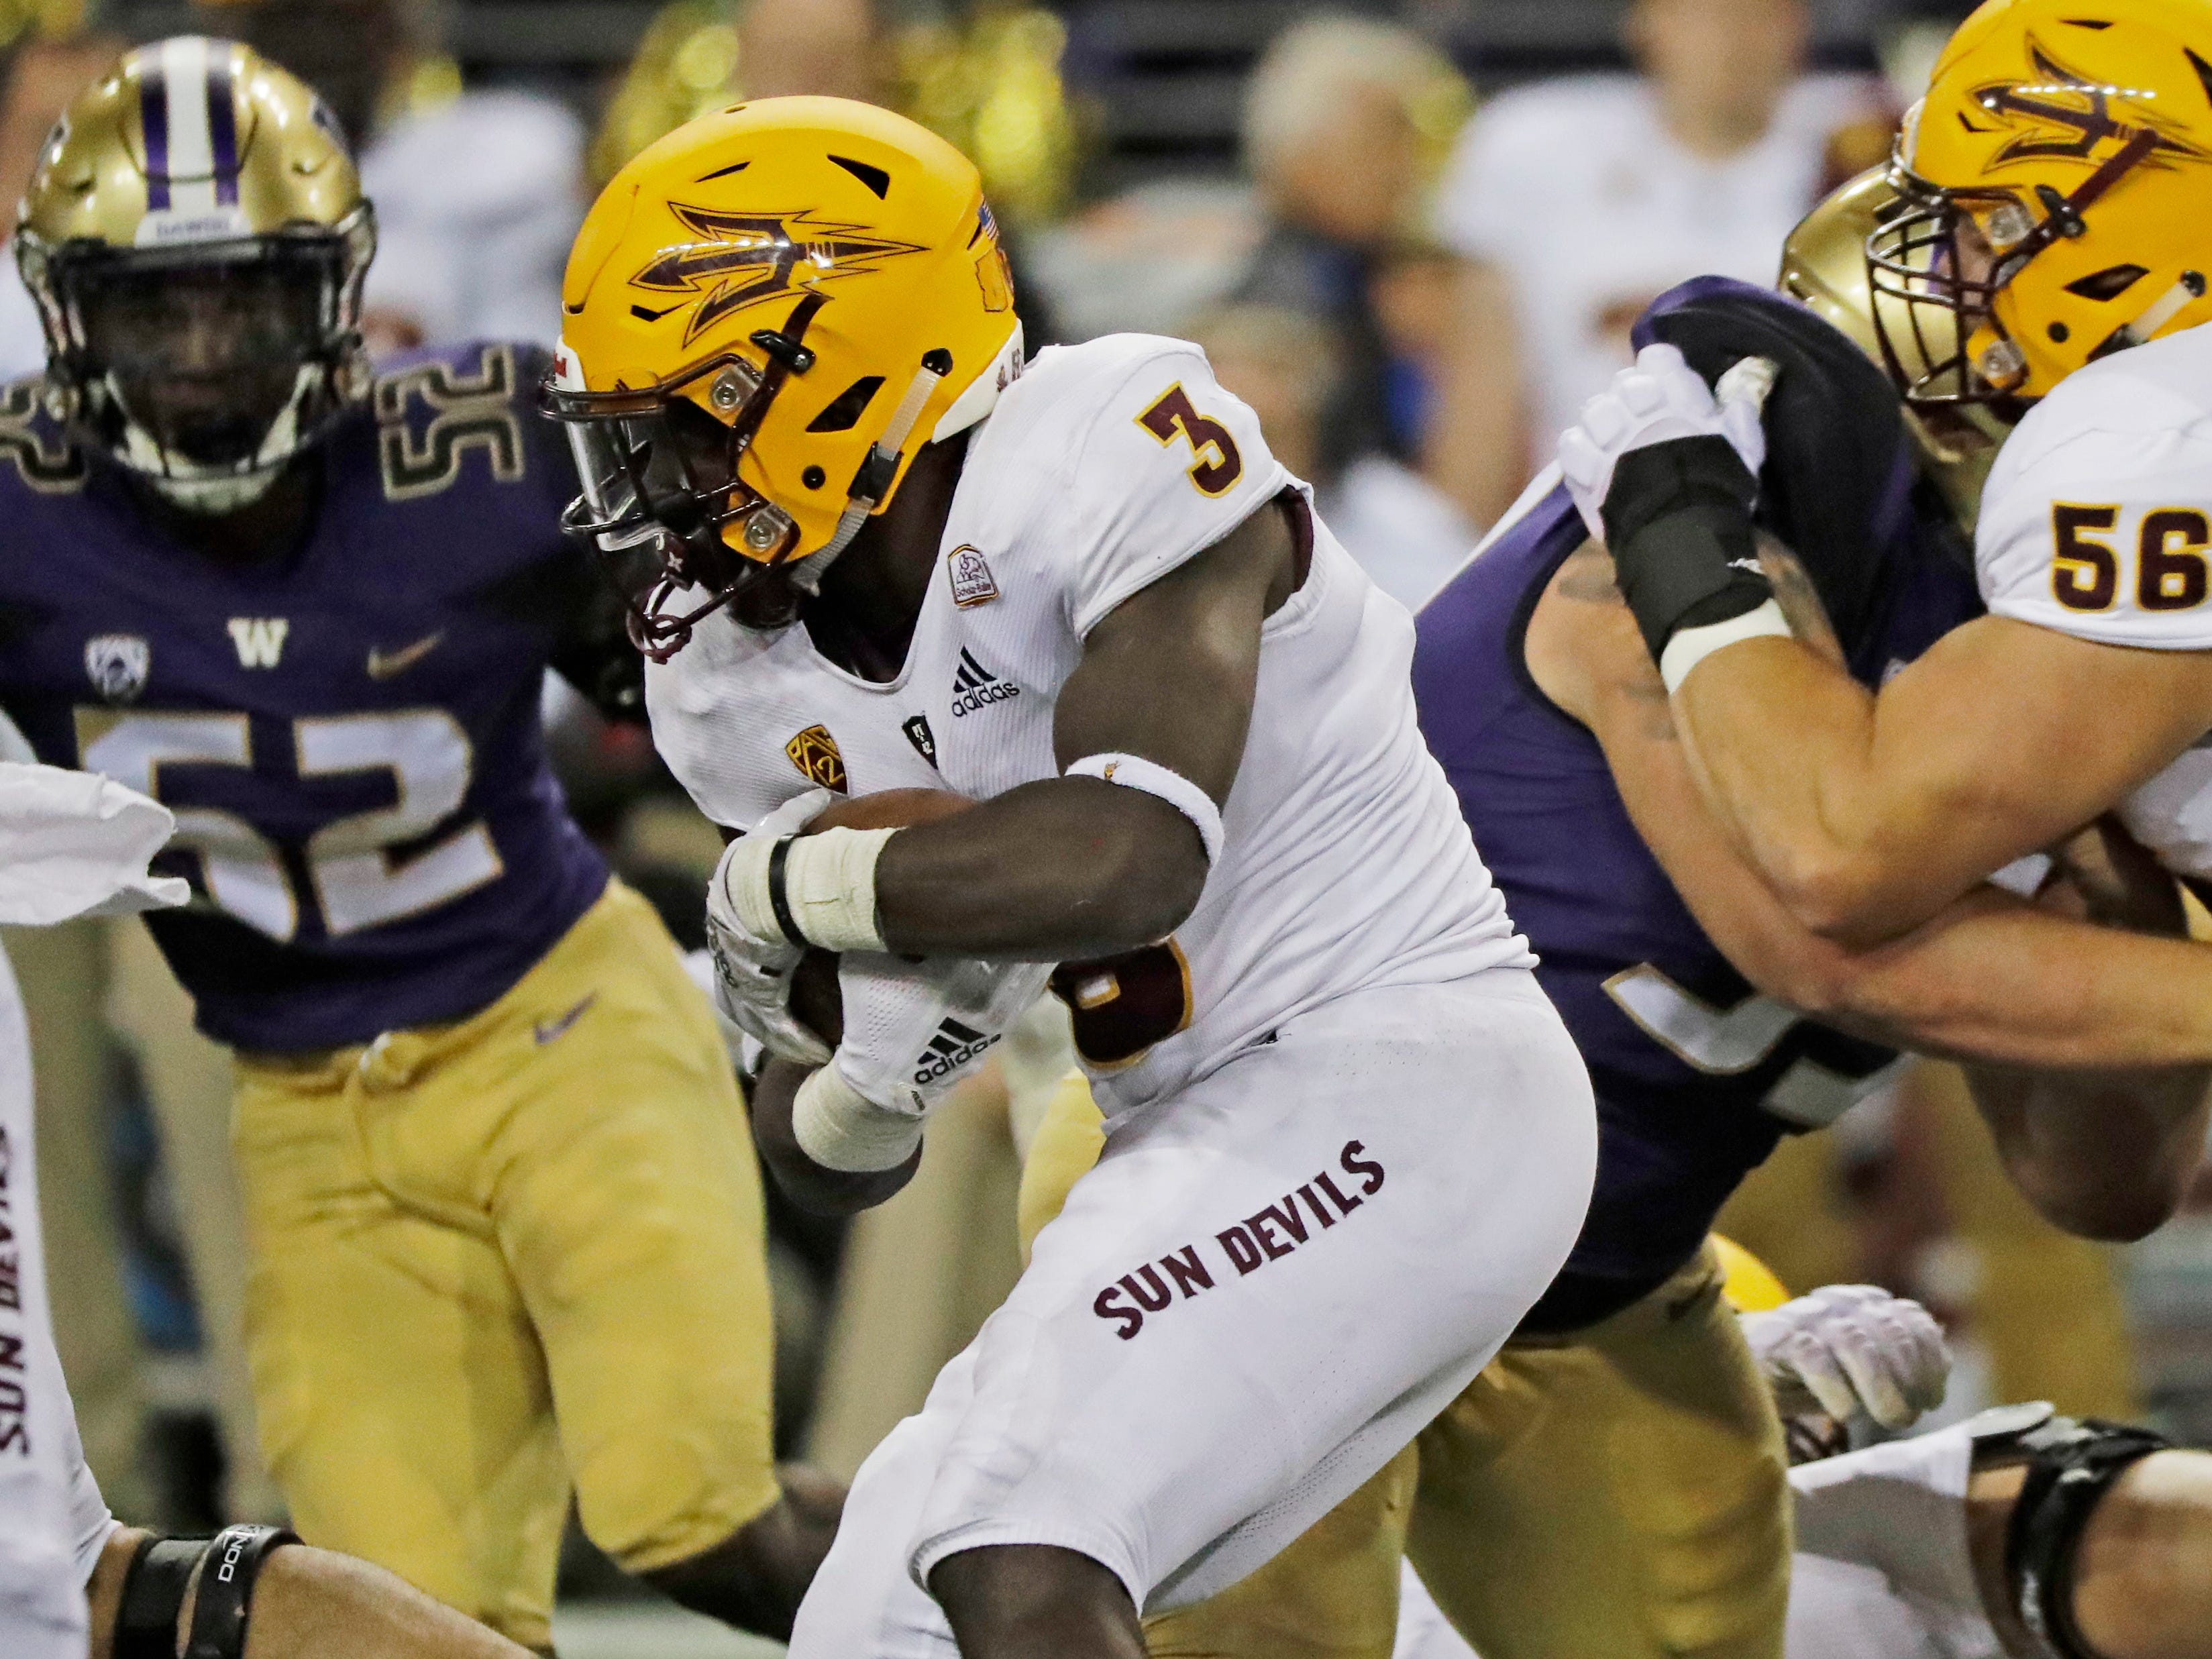 Arizona State running back Eno Benjamin (3) rushes against Washington during the first half of an NCAA college football game, Saturday, Sept. 22, 2018, in Seattle.